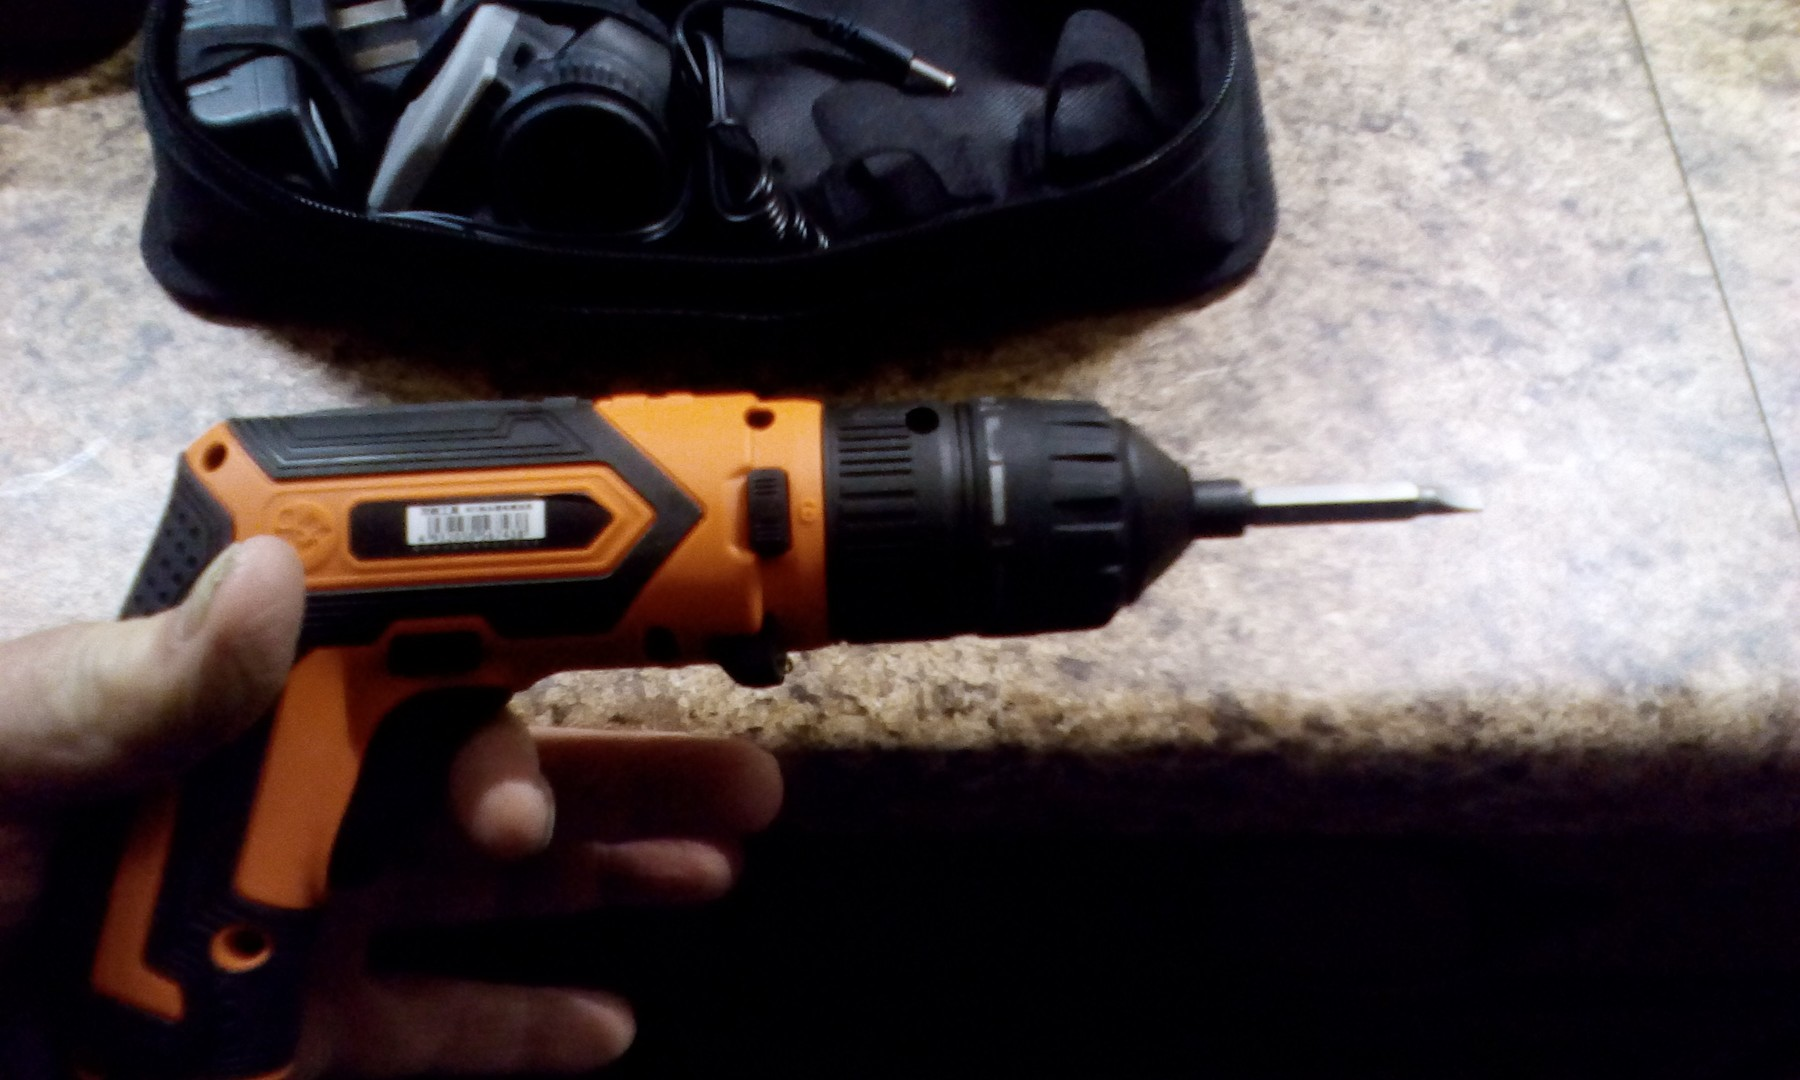 Complete cordless electric screwdriver kit